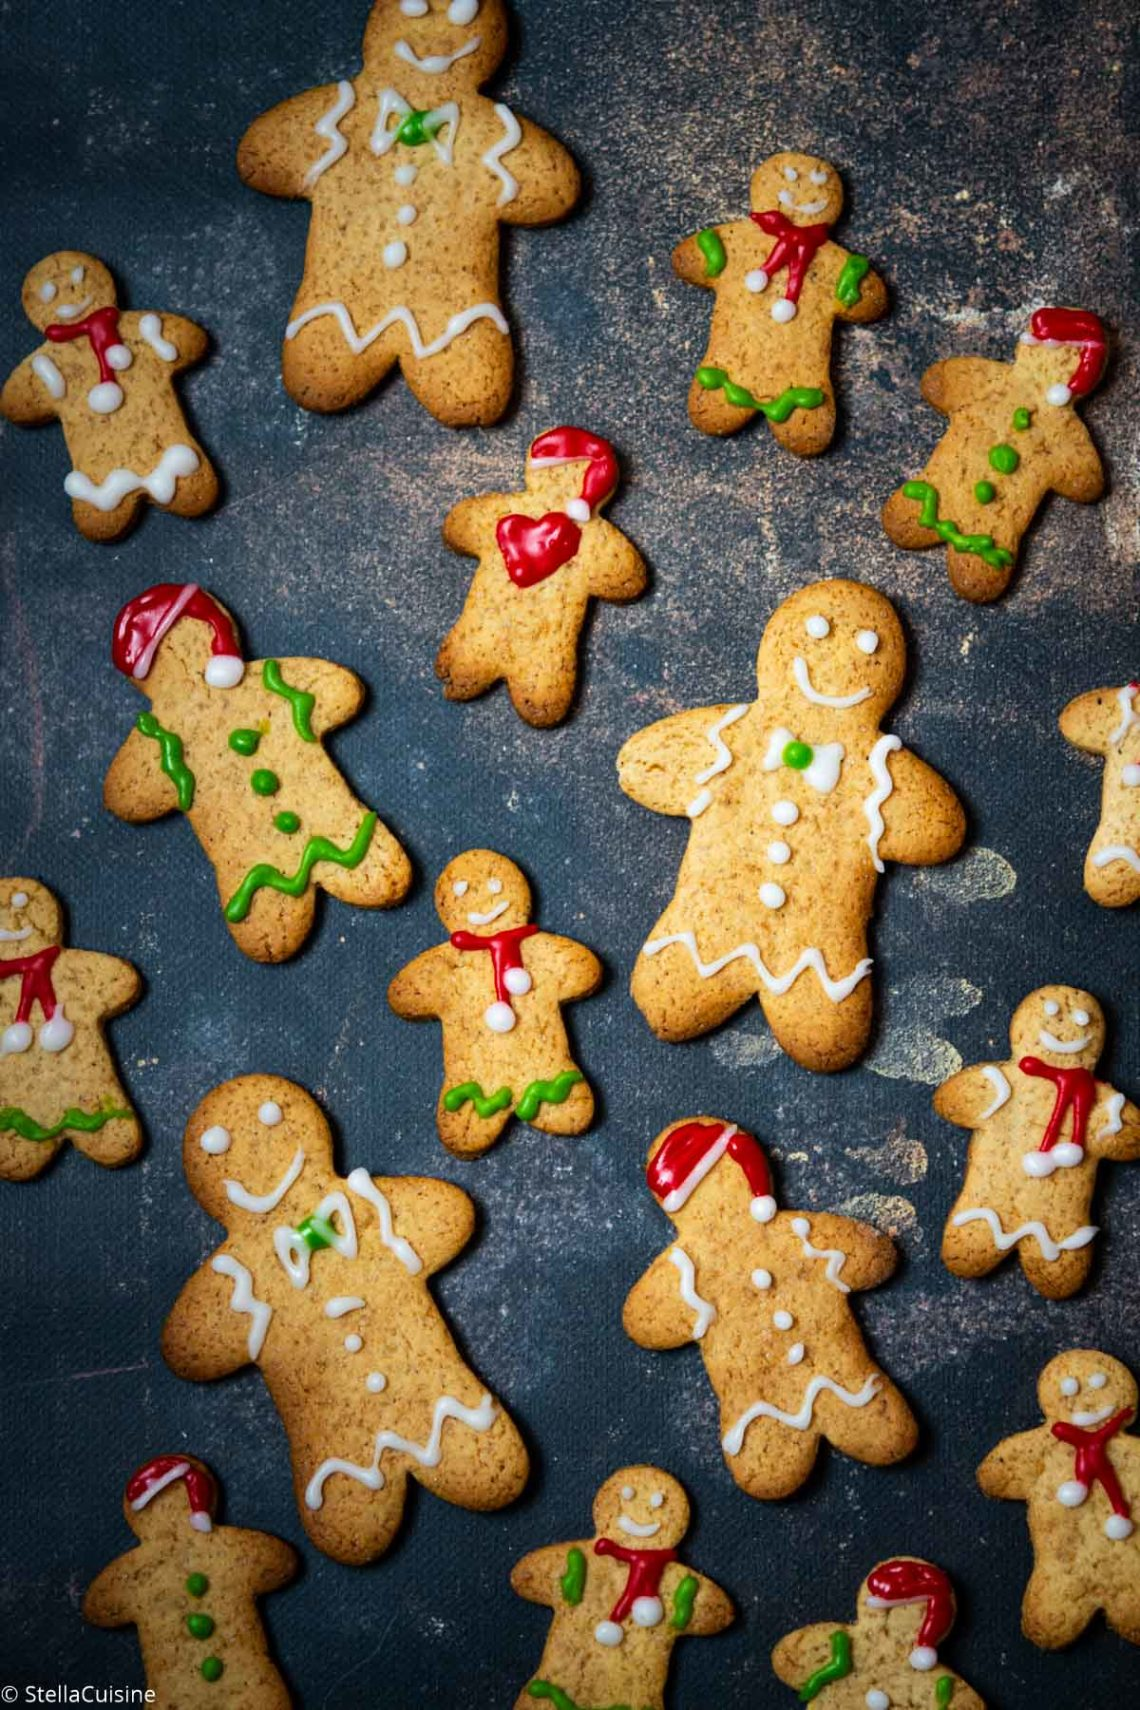 Recette de Gingerbread Men (biscuits épicés)